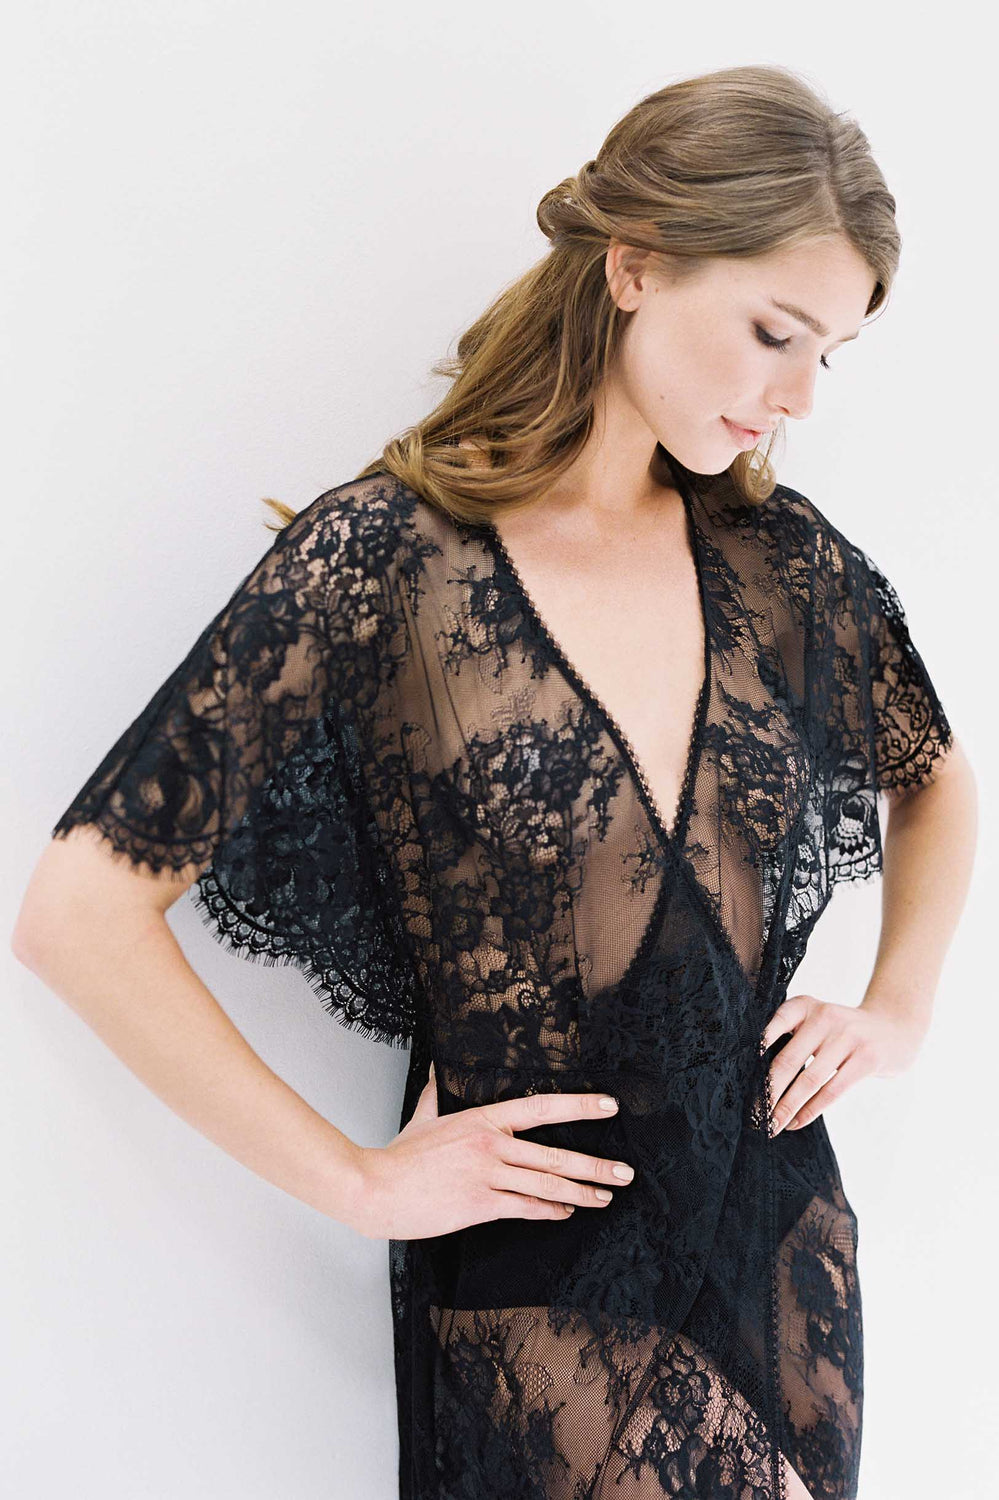 Anita Midi lace robe with flutter kimono sleeves in Black dress cover up